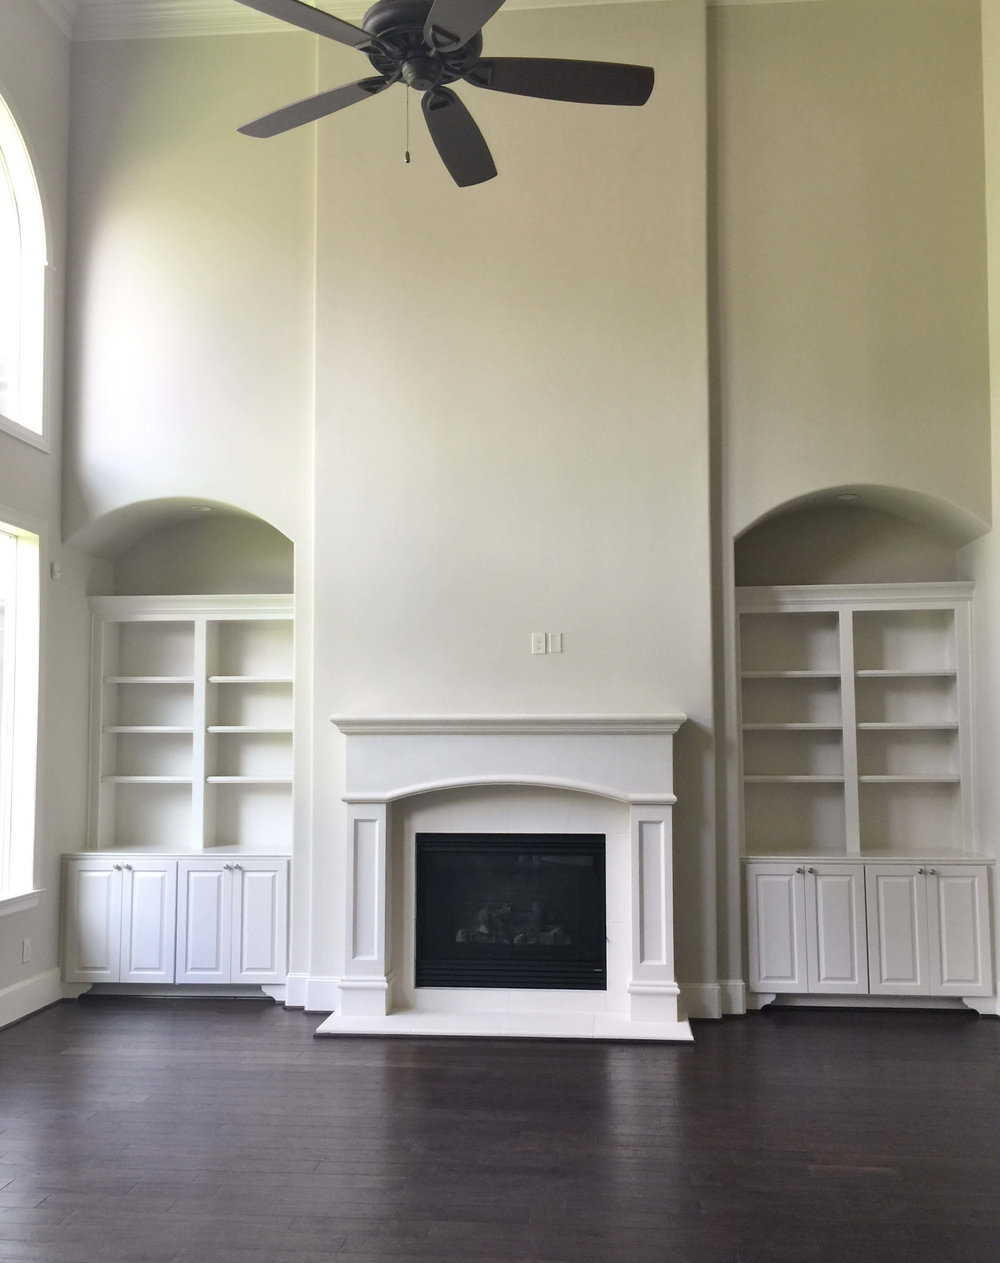 BEFORE - A light filled beautiful space that lacked the quality of materials this living room deserved. #livingroomideas #marbletile #fireplacewall #niche